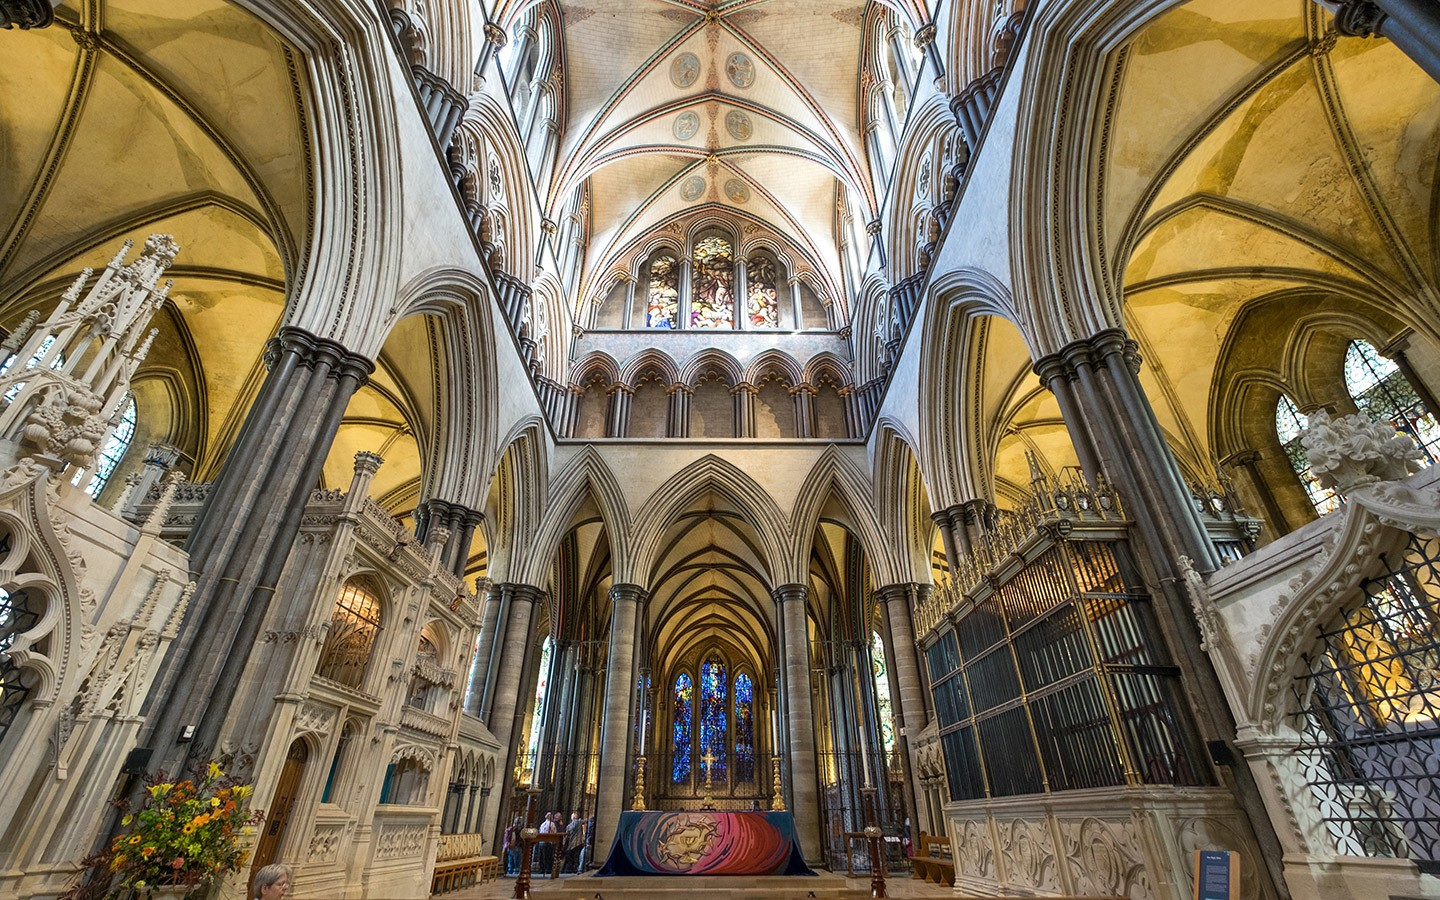 The interiors of Salisbury cathedral